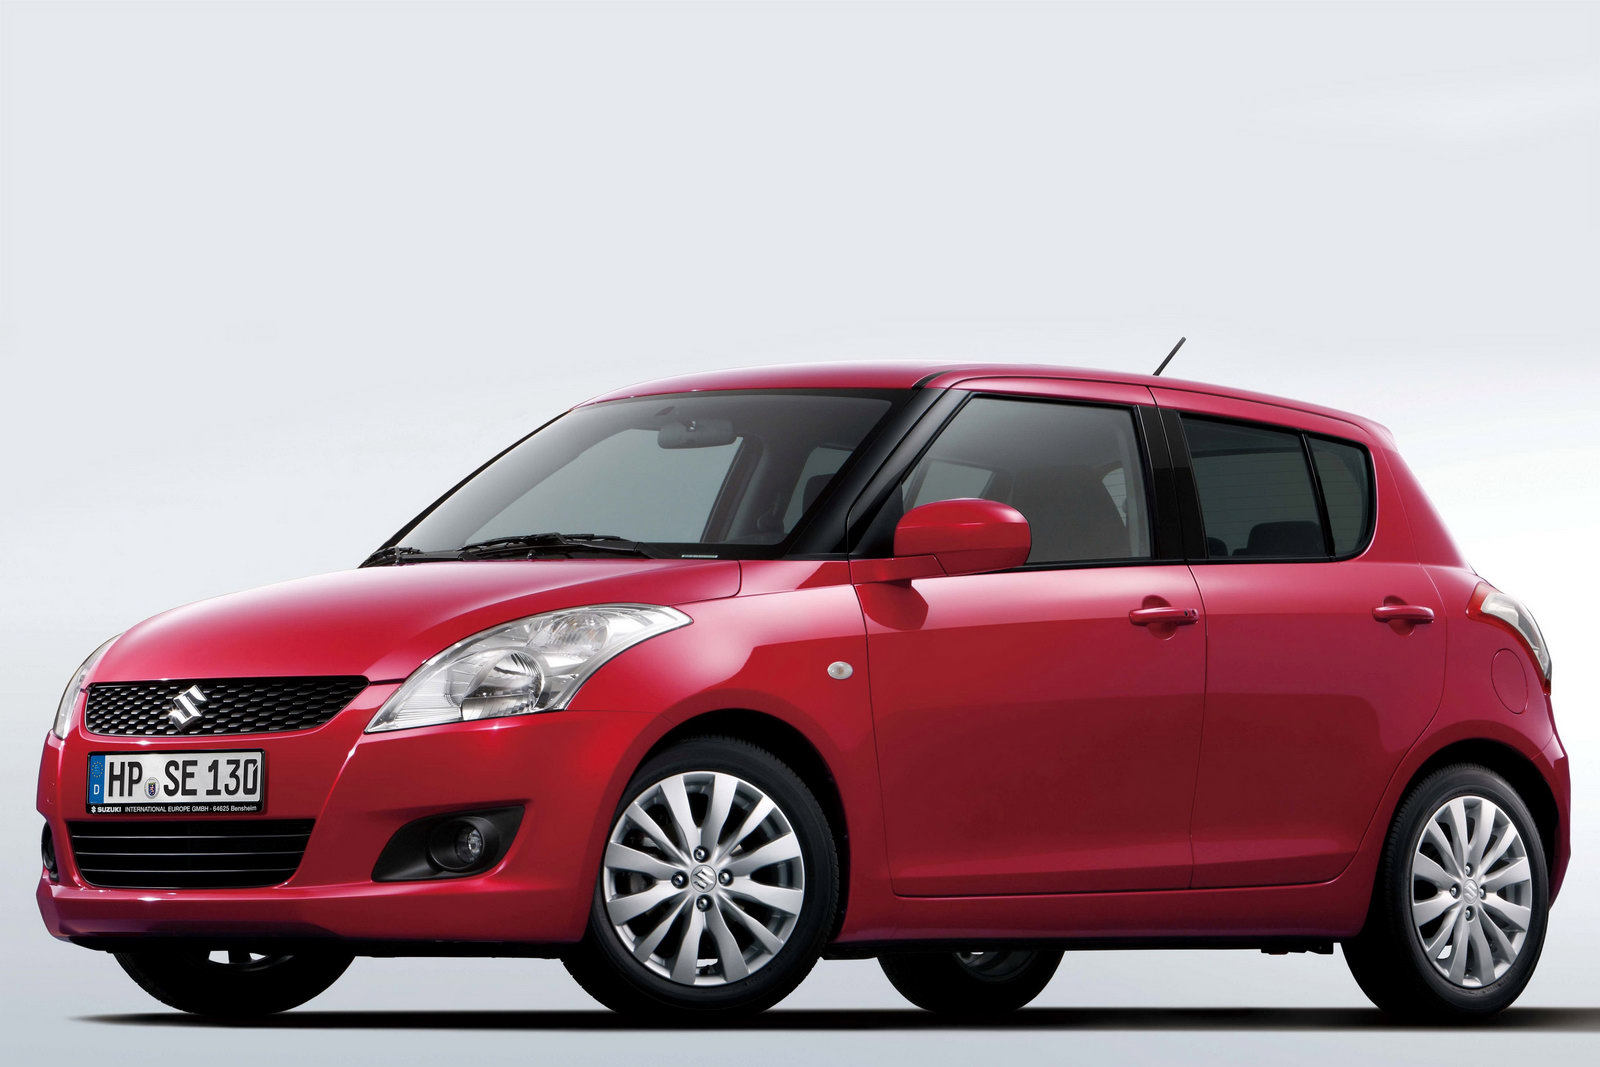 Chevrolet swift 2014 photo - 4